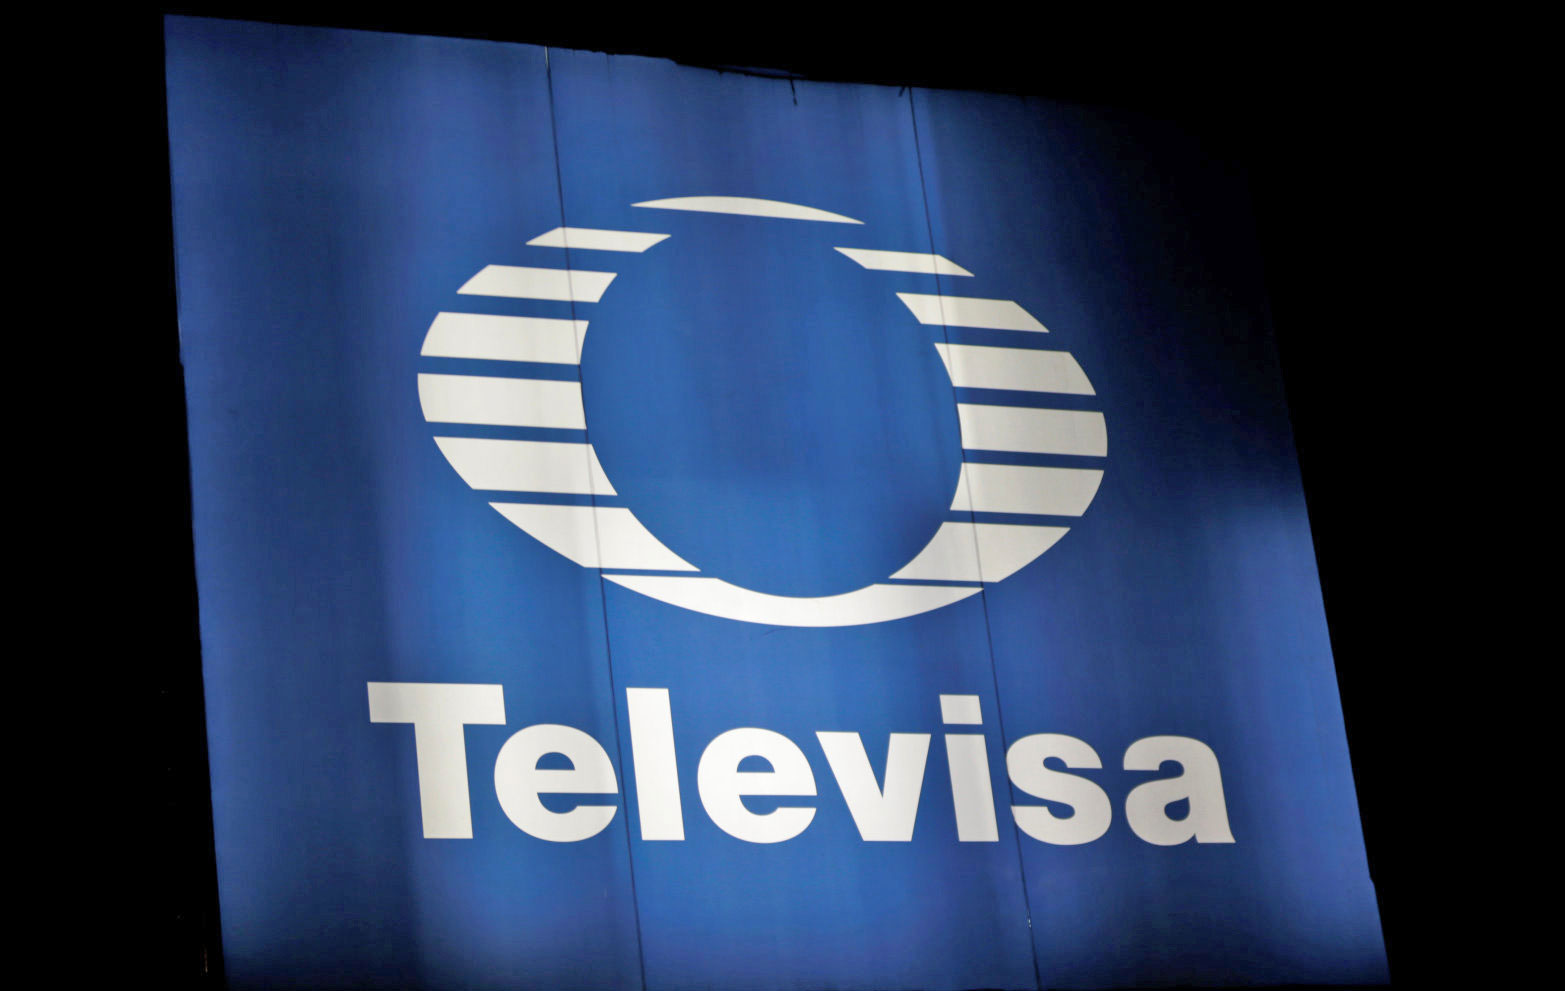 Amazon inks deal with Televisa for Spanish-language shows